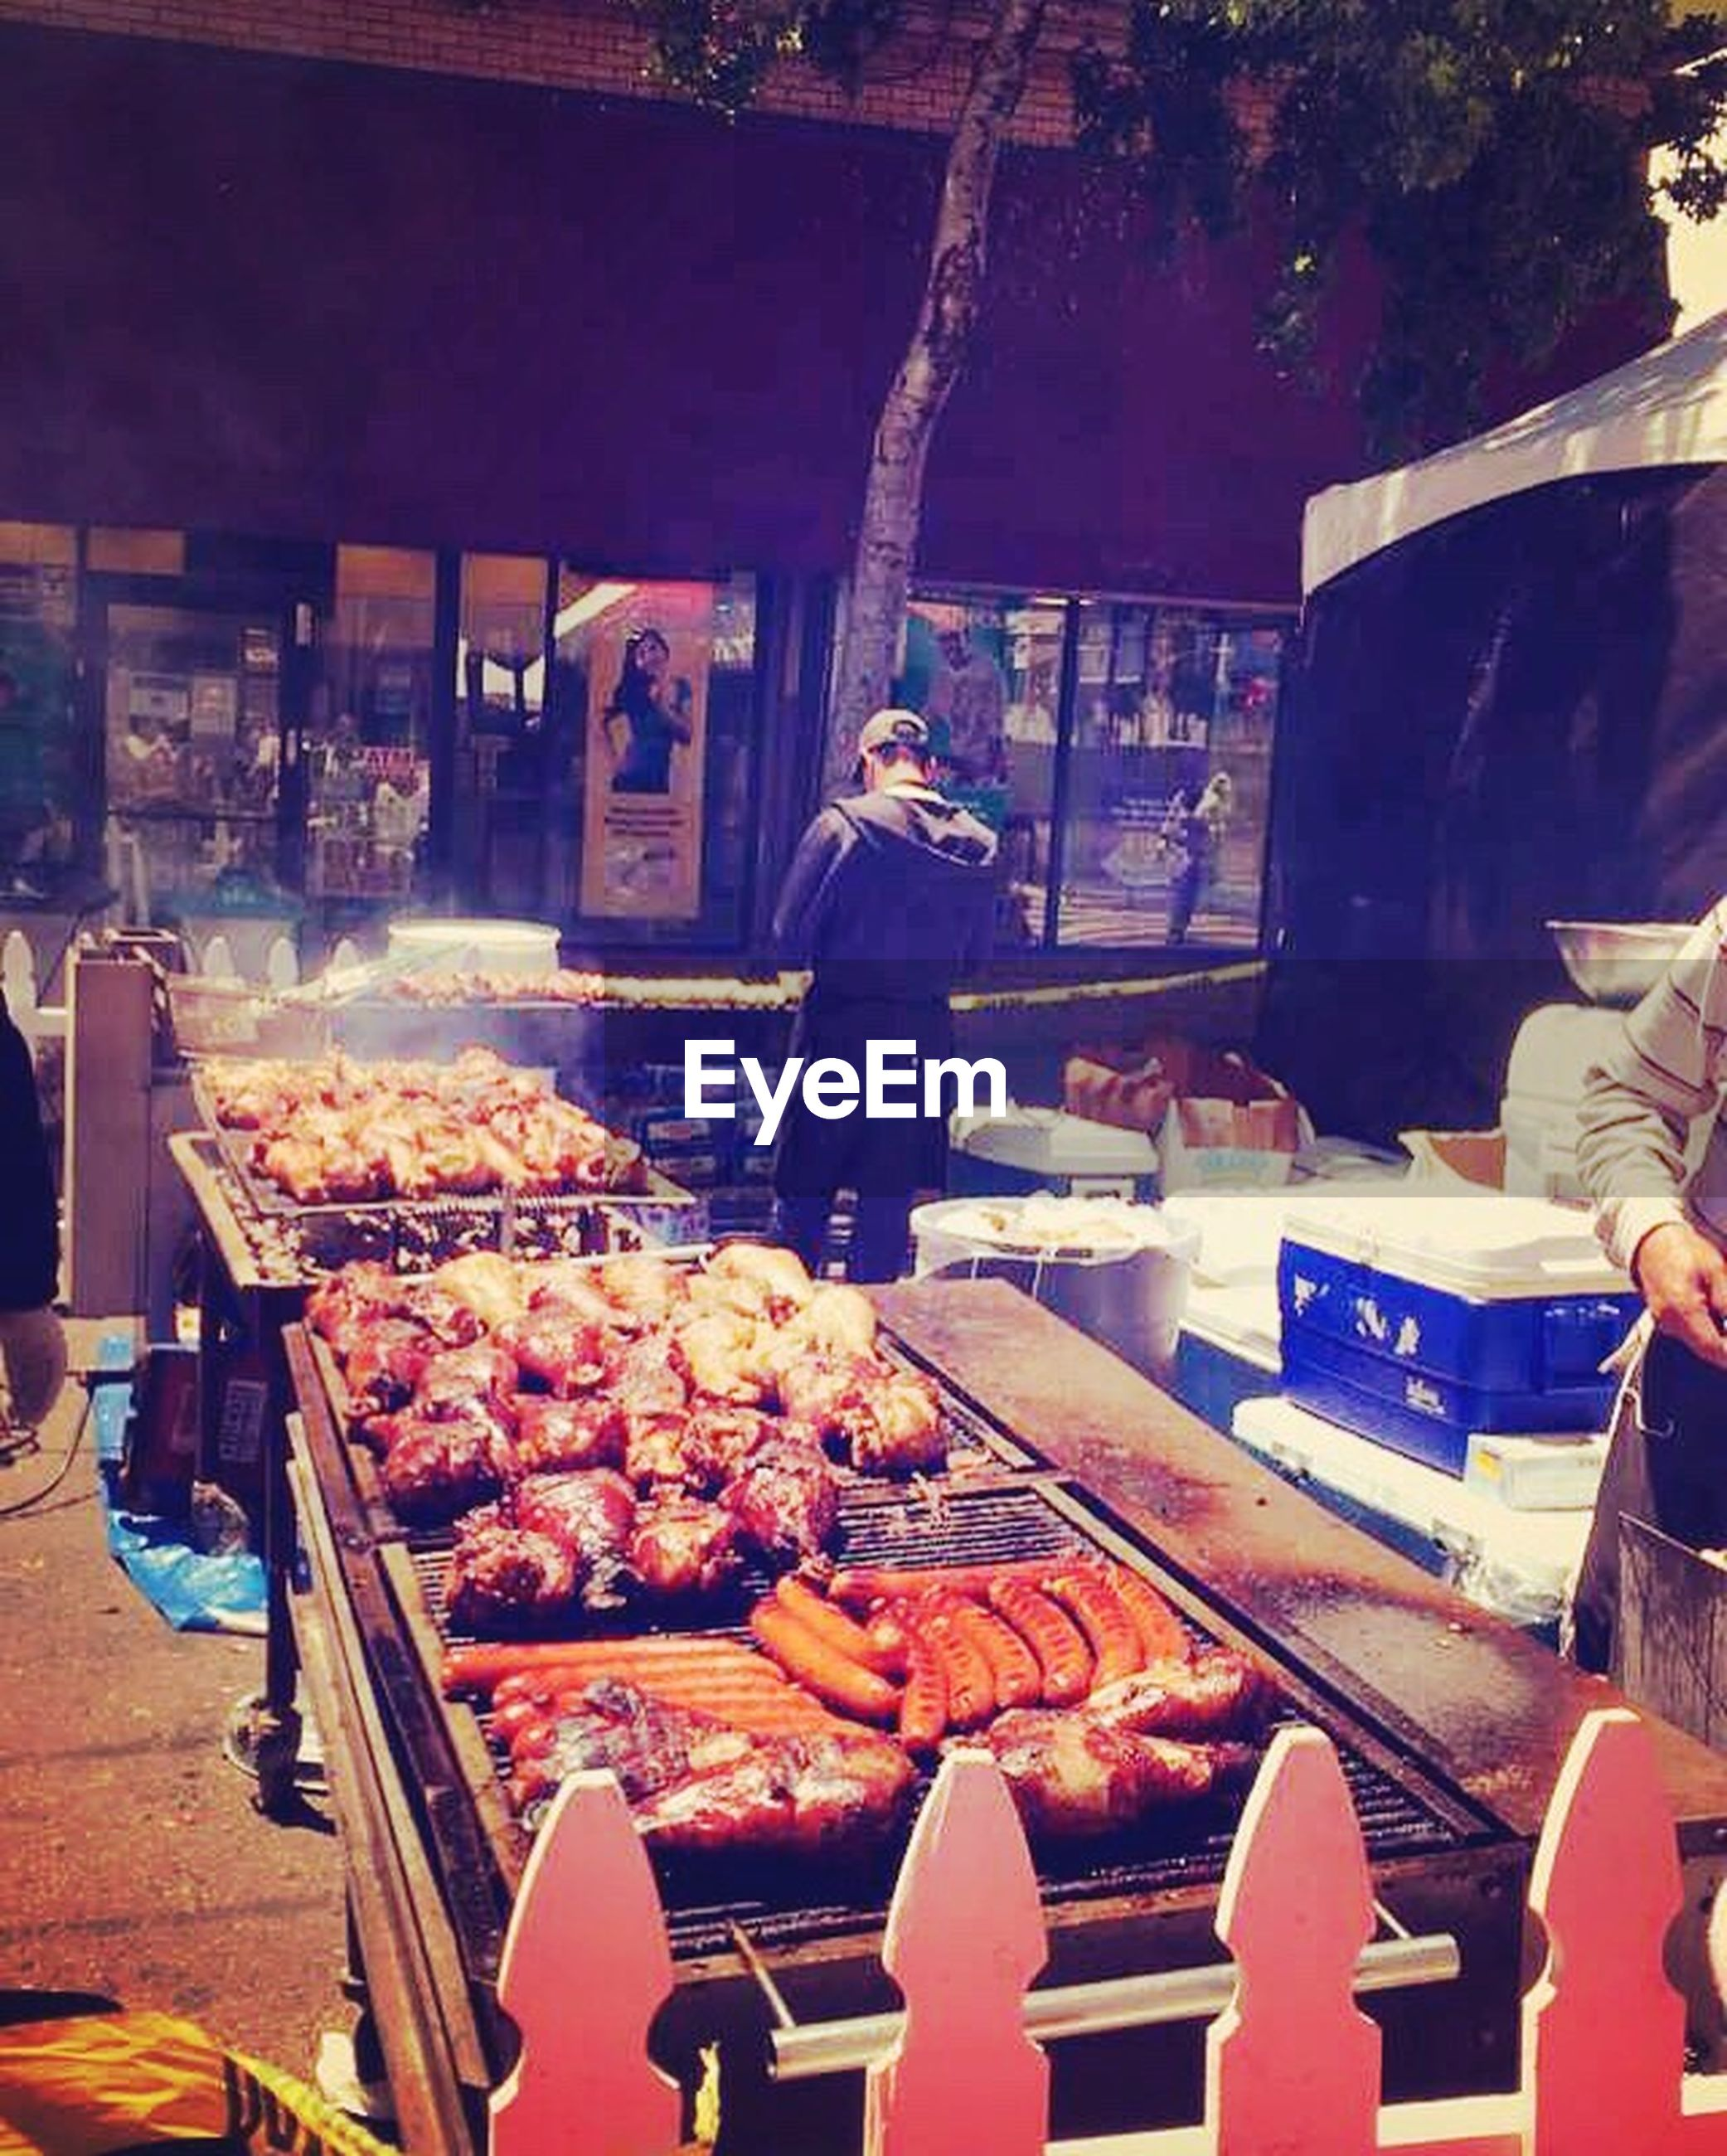 men, lifestyles, food and drink, retail, market, for sale, market stall, food, person, leisure activity, standing, small business, casual clothing, freshness, built structure, selling, holding